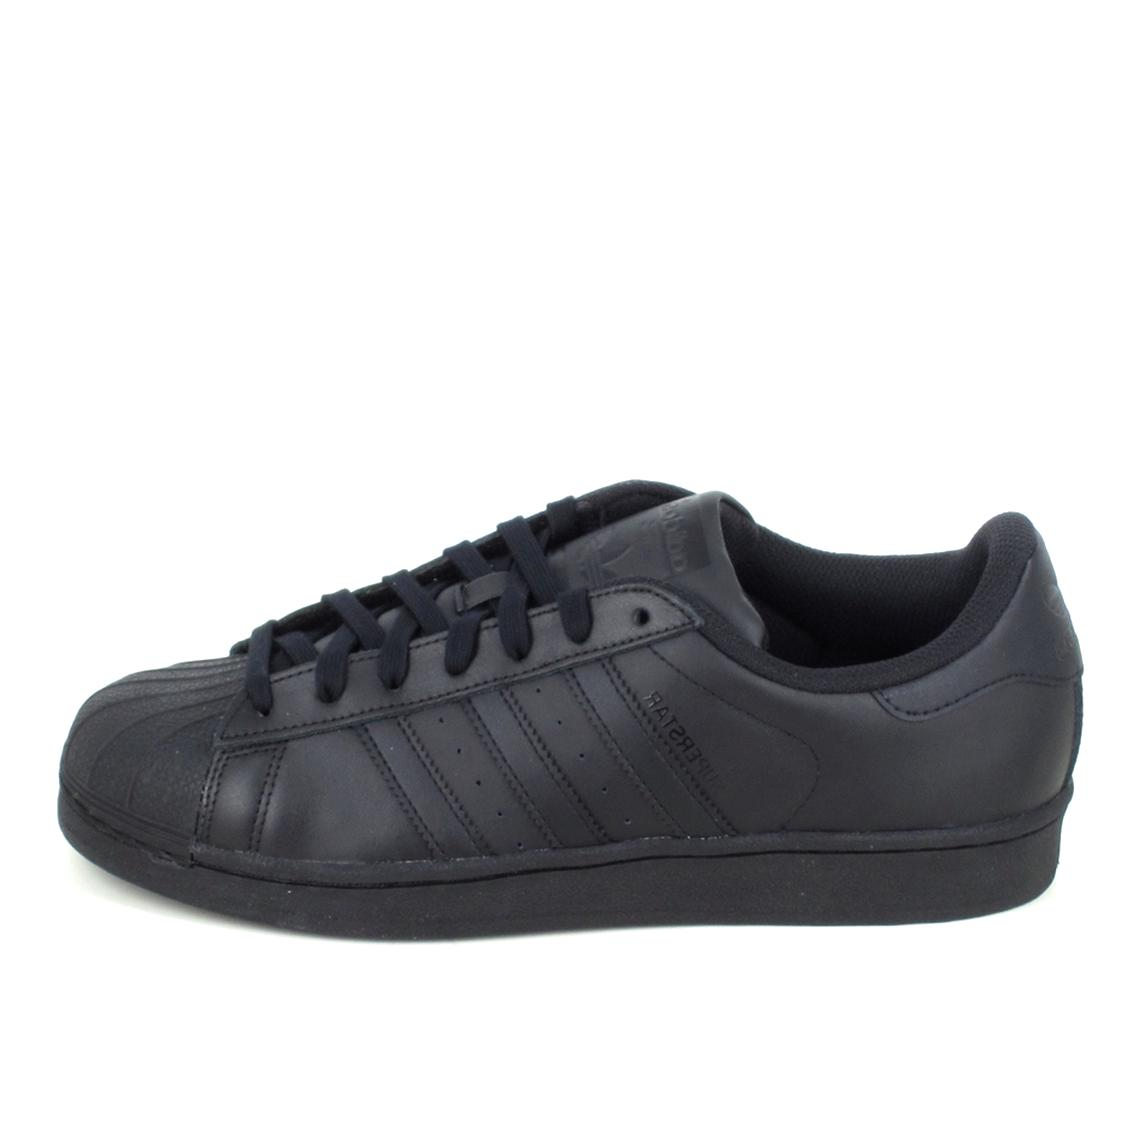 Adidas Superstar Noir d'occasion